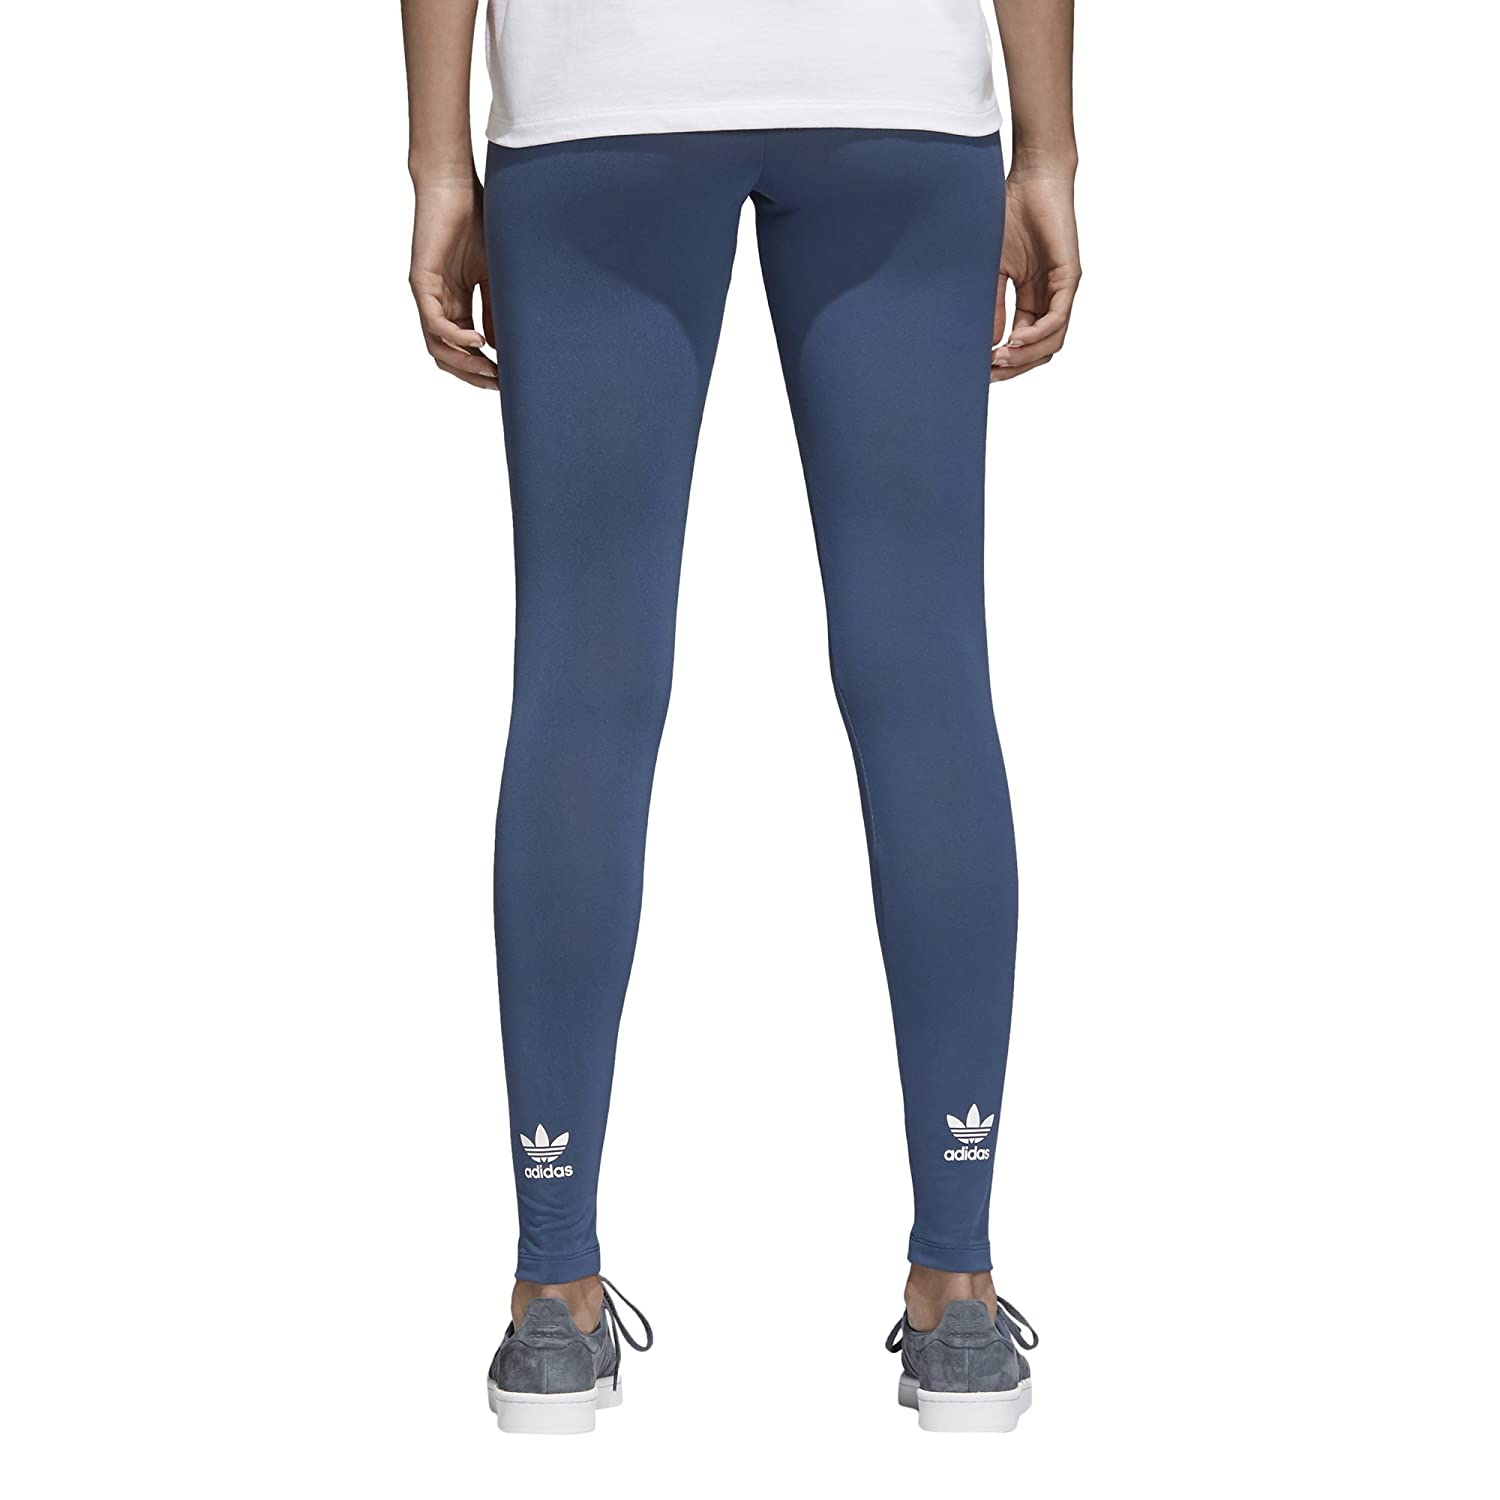 f497795b176687 adidas Originals Women's Trefoil Leggings at Amazon Women's Clothing store: